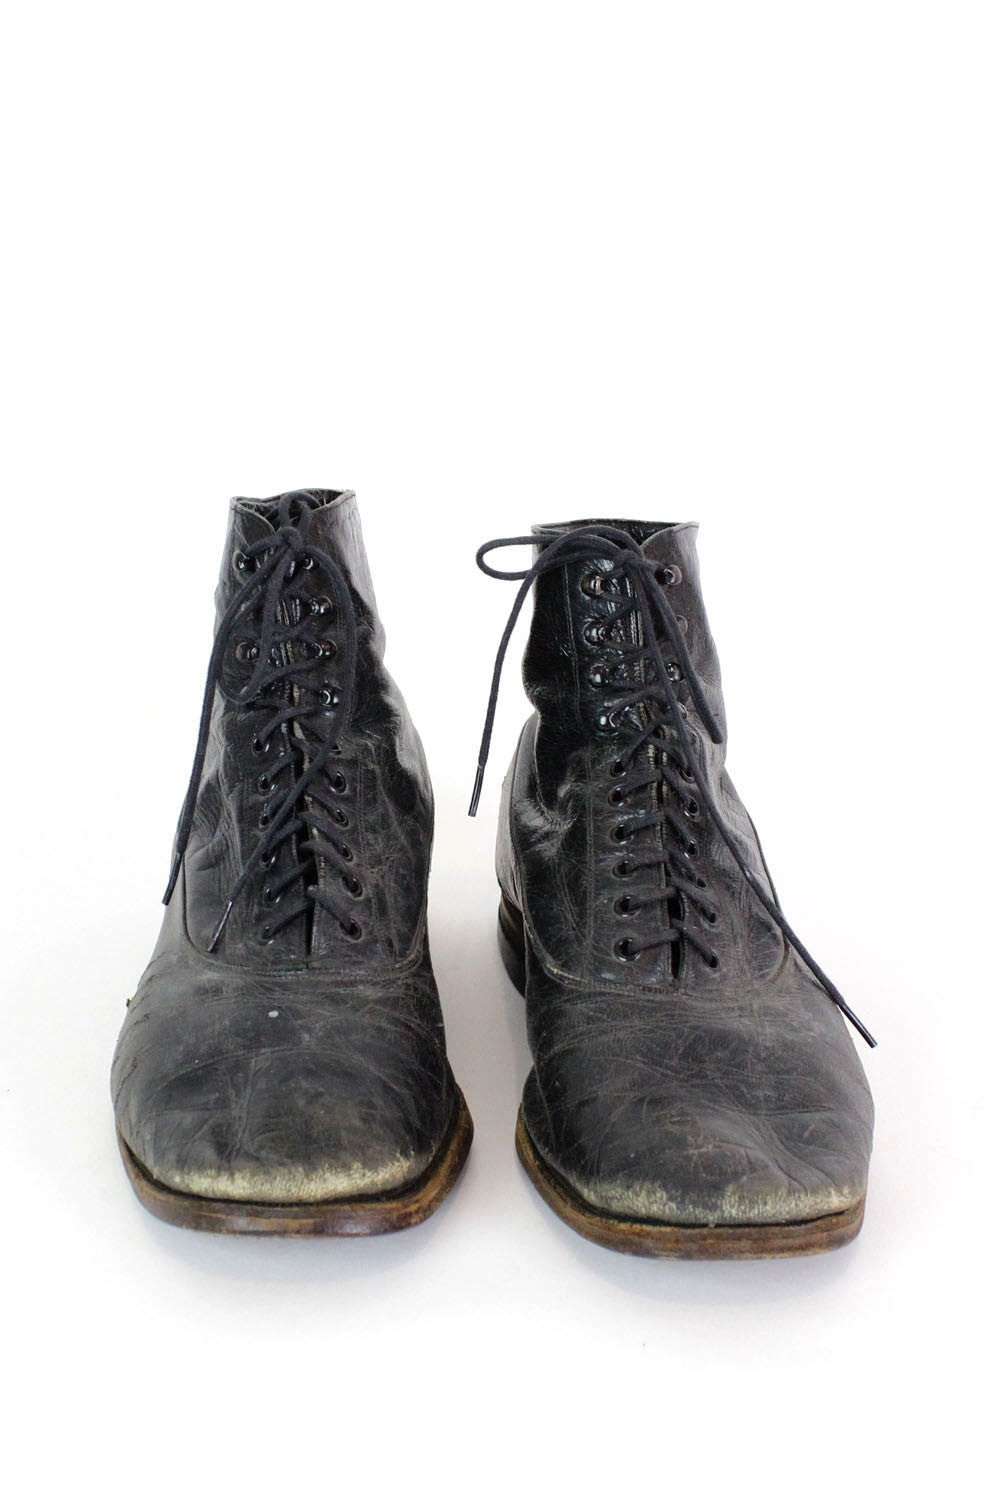 40s Lace Up Leather Boots 8